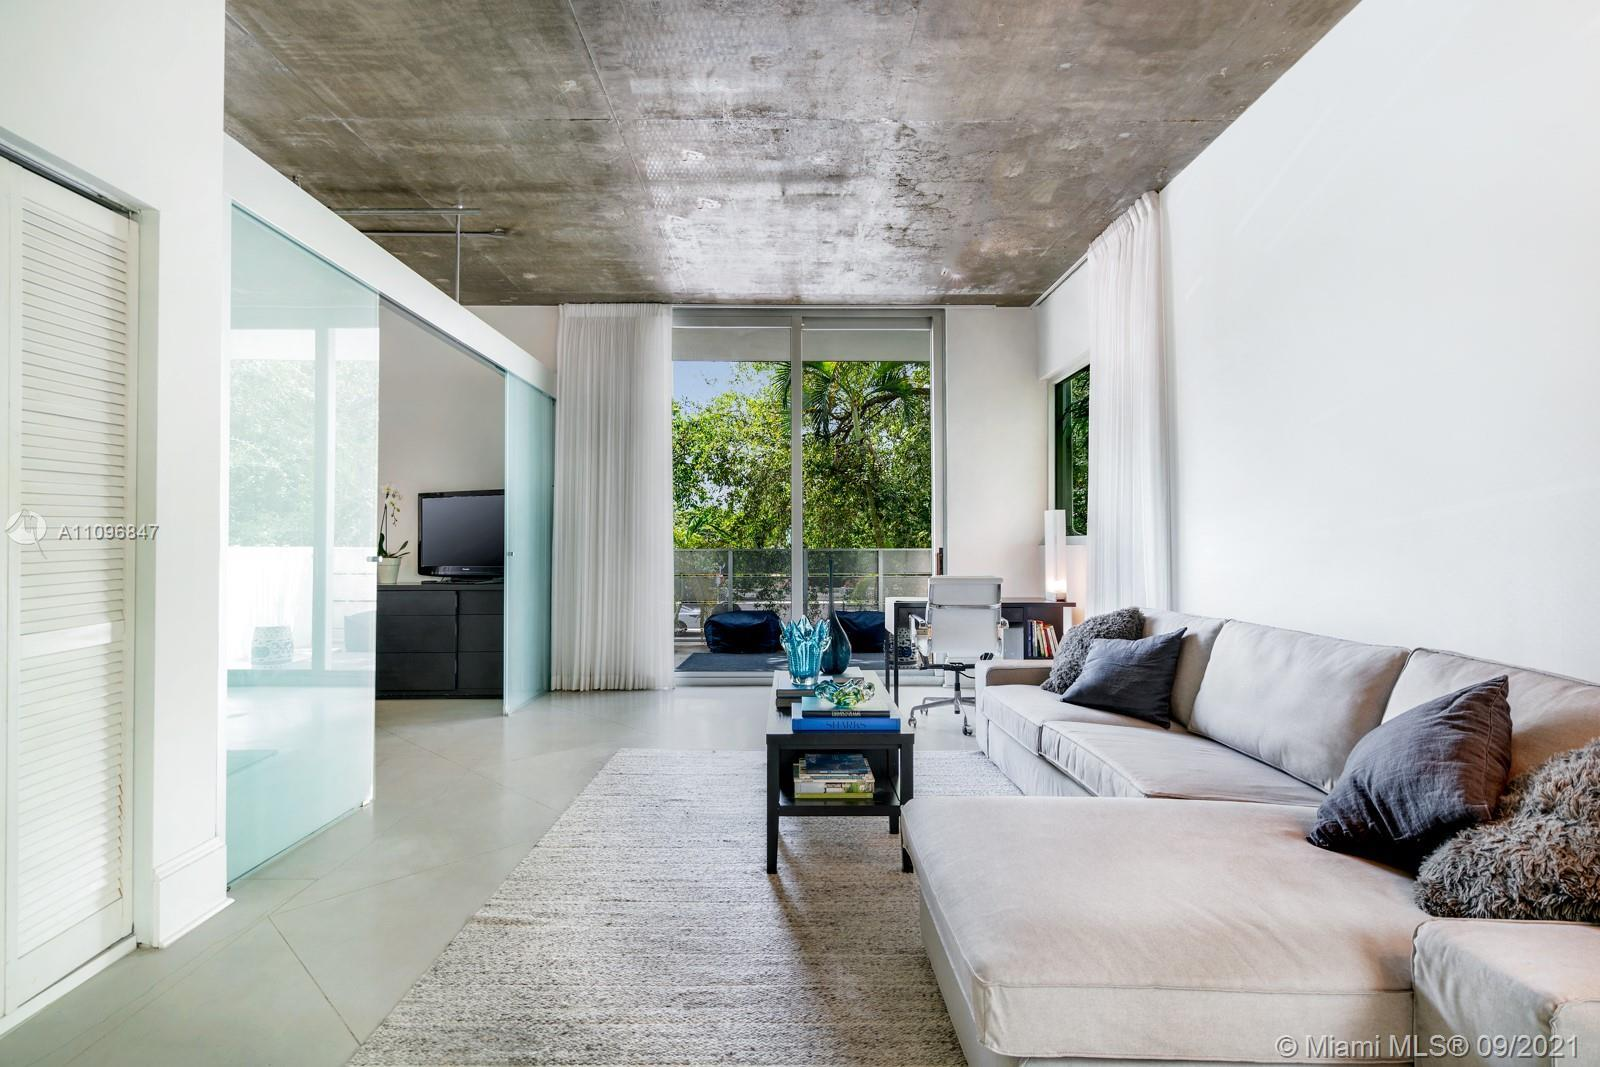 Modern and chic loft space located in the heart of South Beach.  Boasting impressive 10' ceilings, t